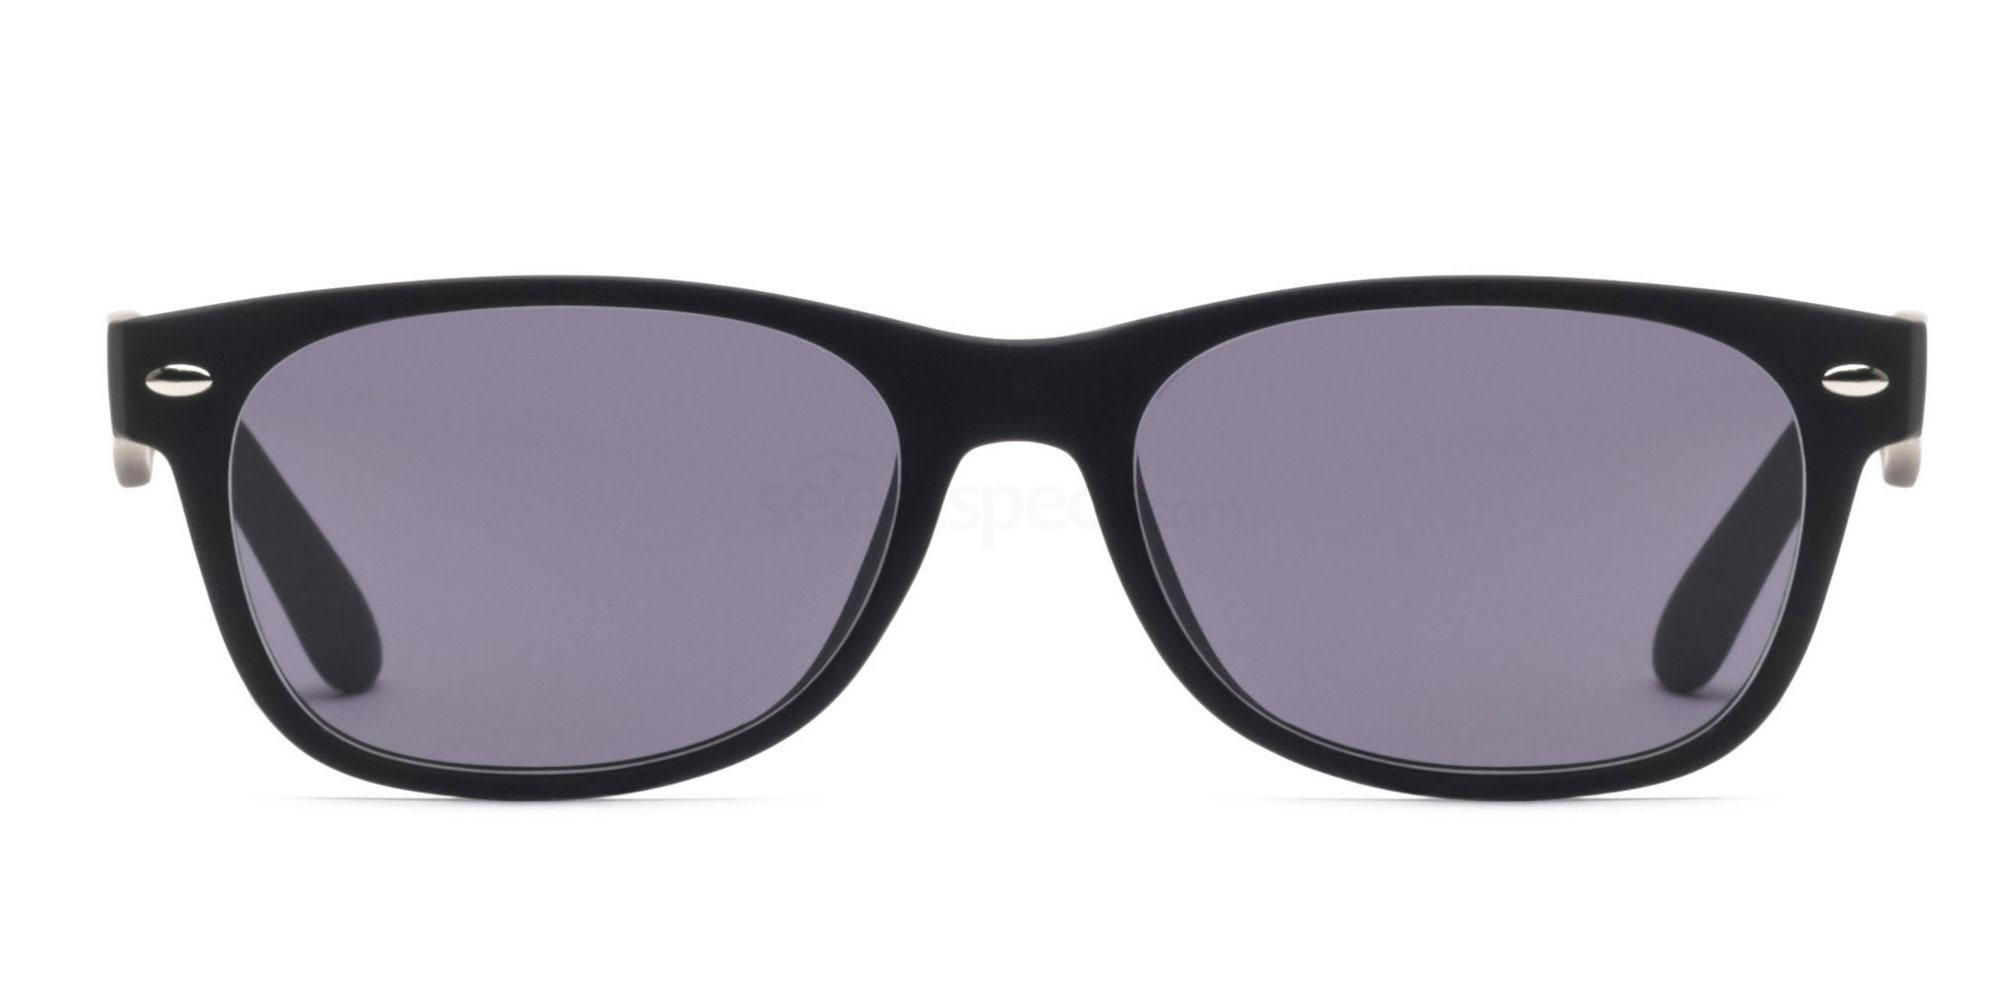 Savannah S8122 - Black (Sunglasses)